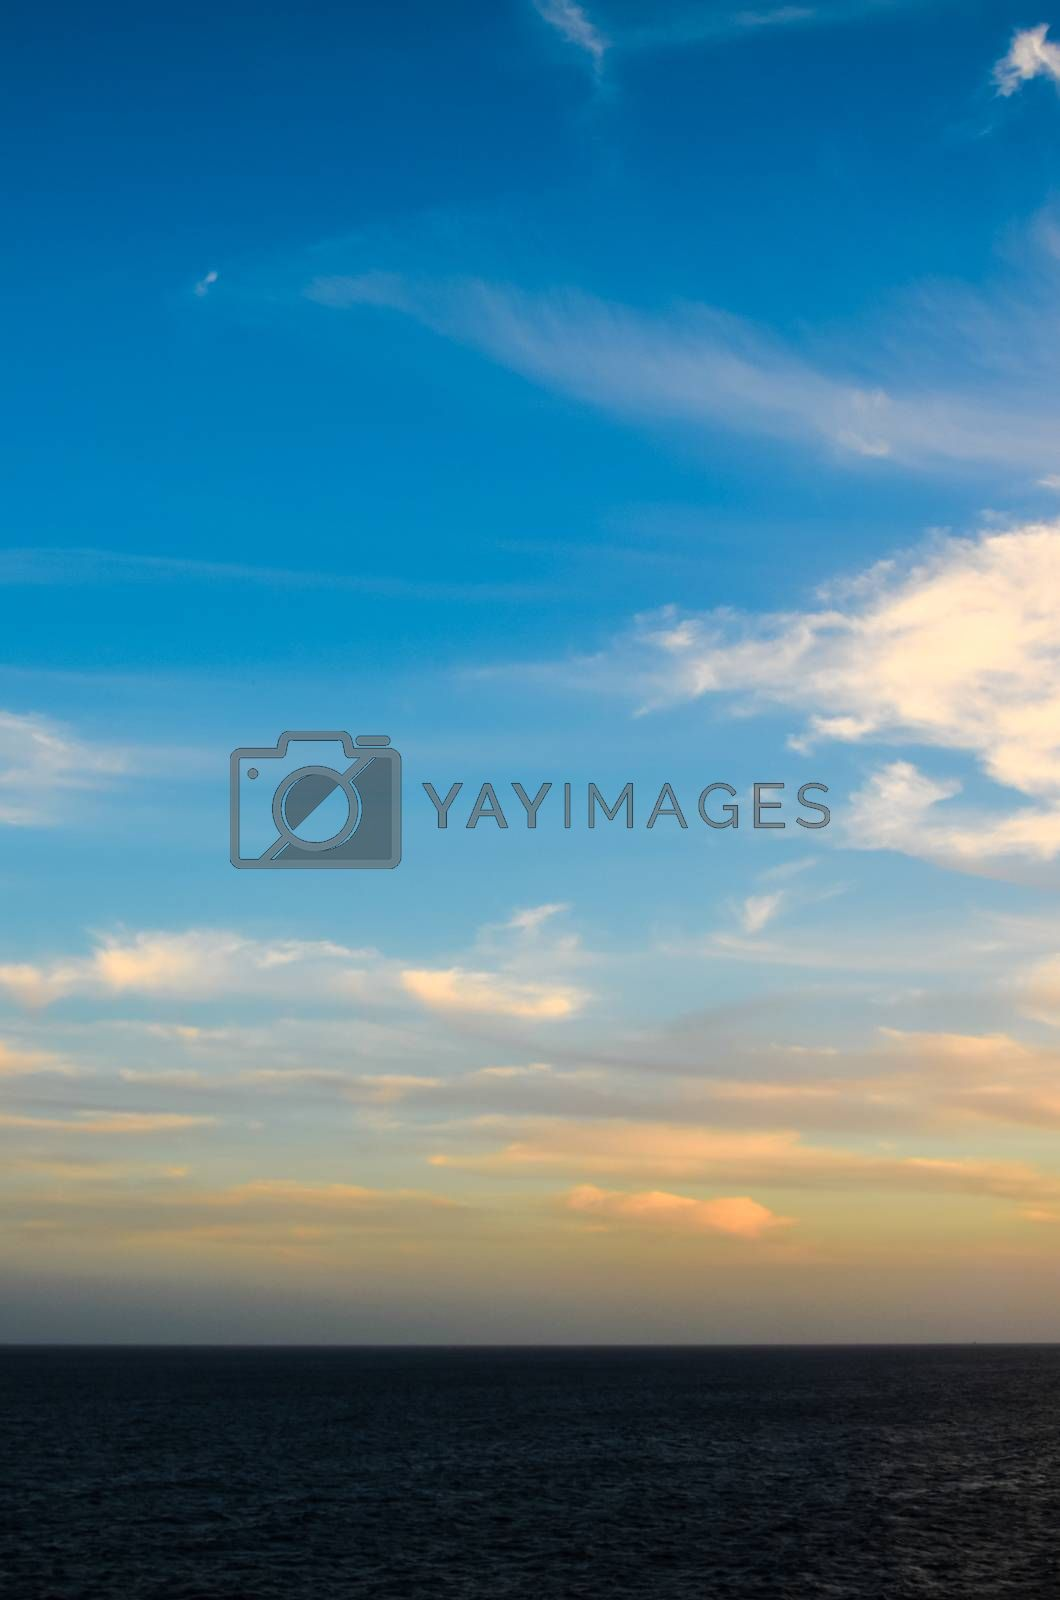 Royalty free image of Colored Clouds at Sunset by underworld